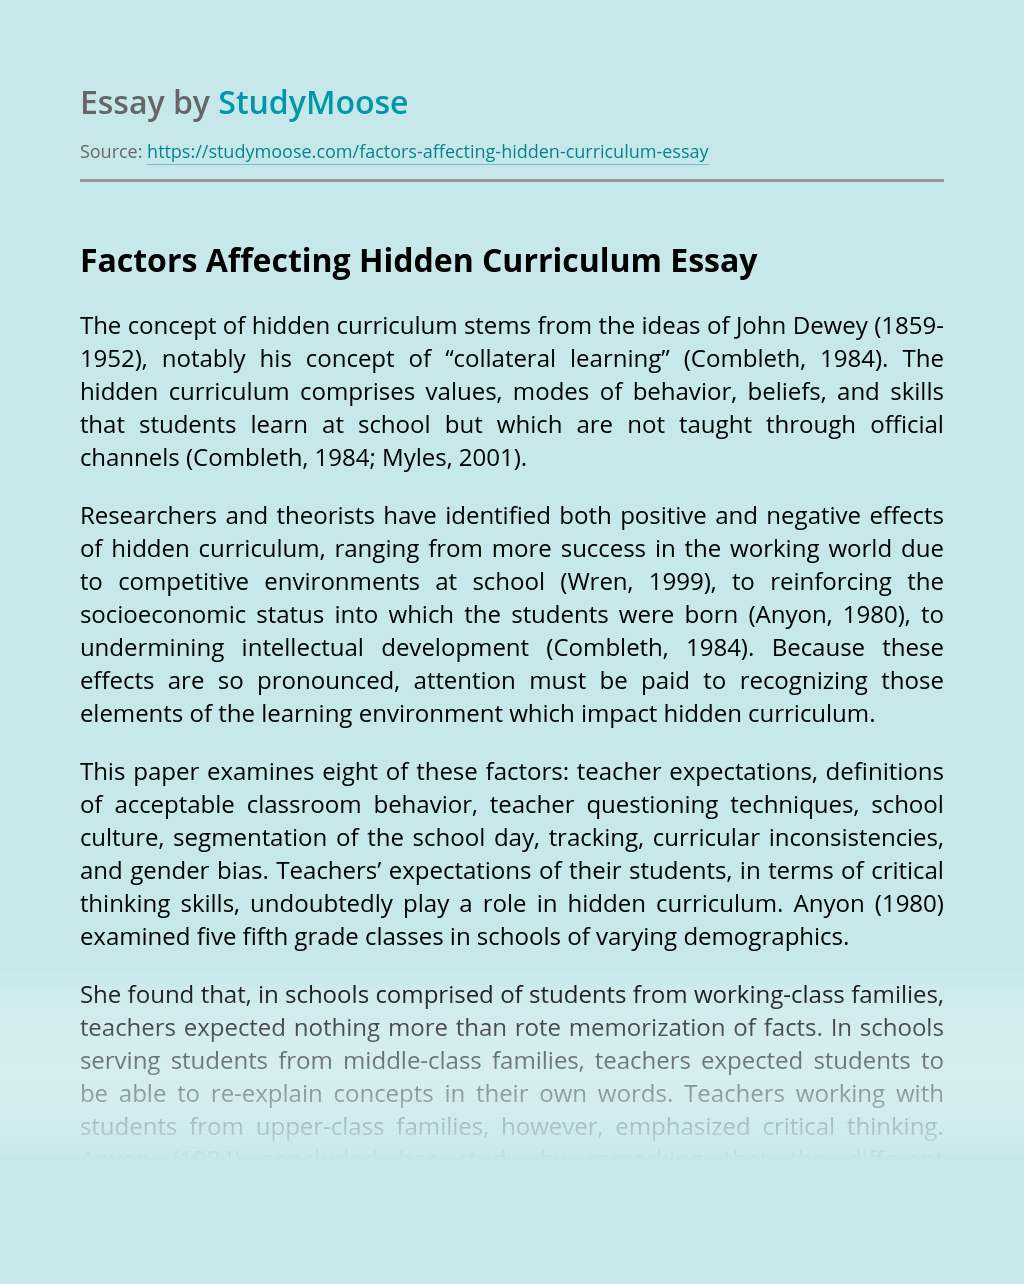 Factors Affecting Hidden Curriculum